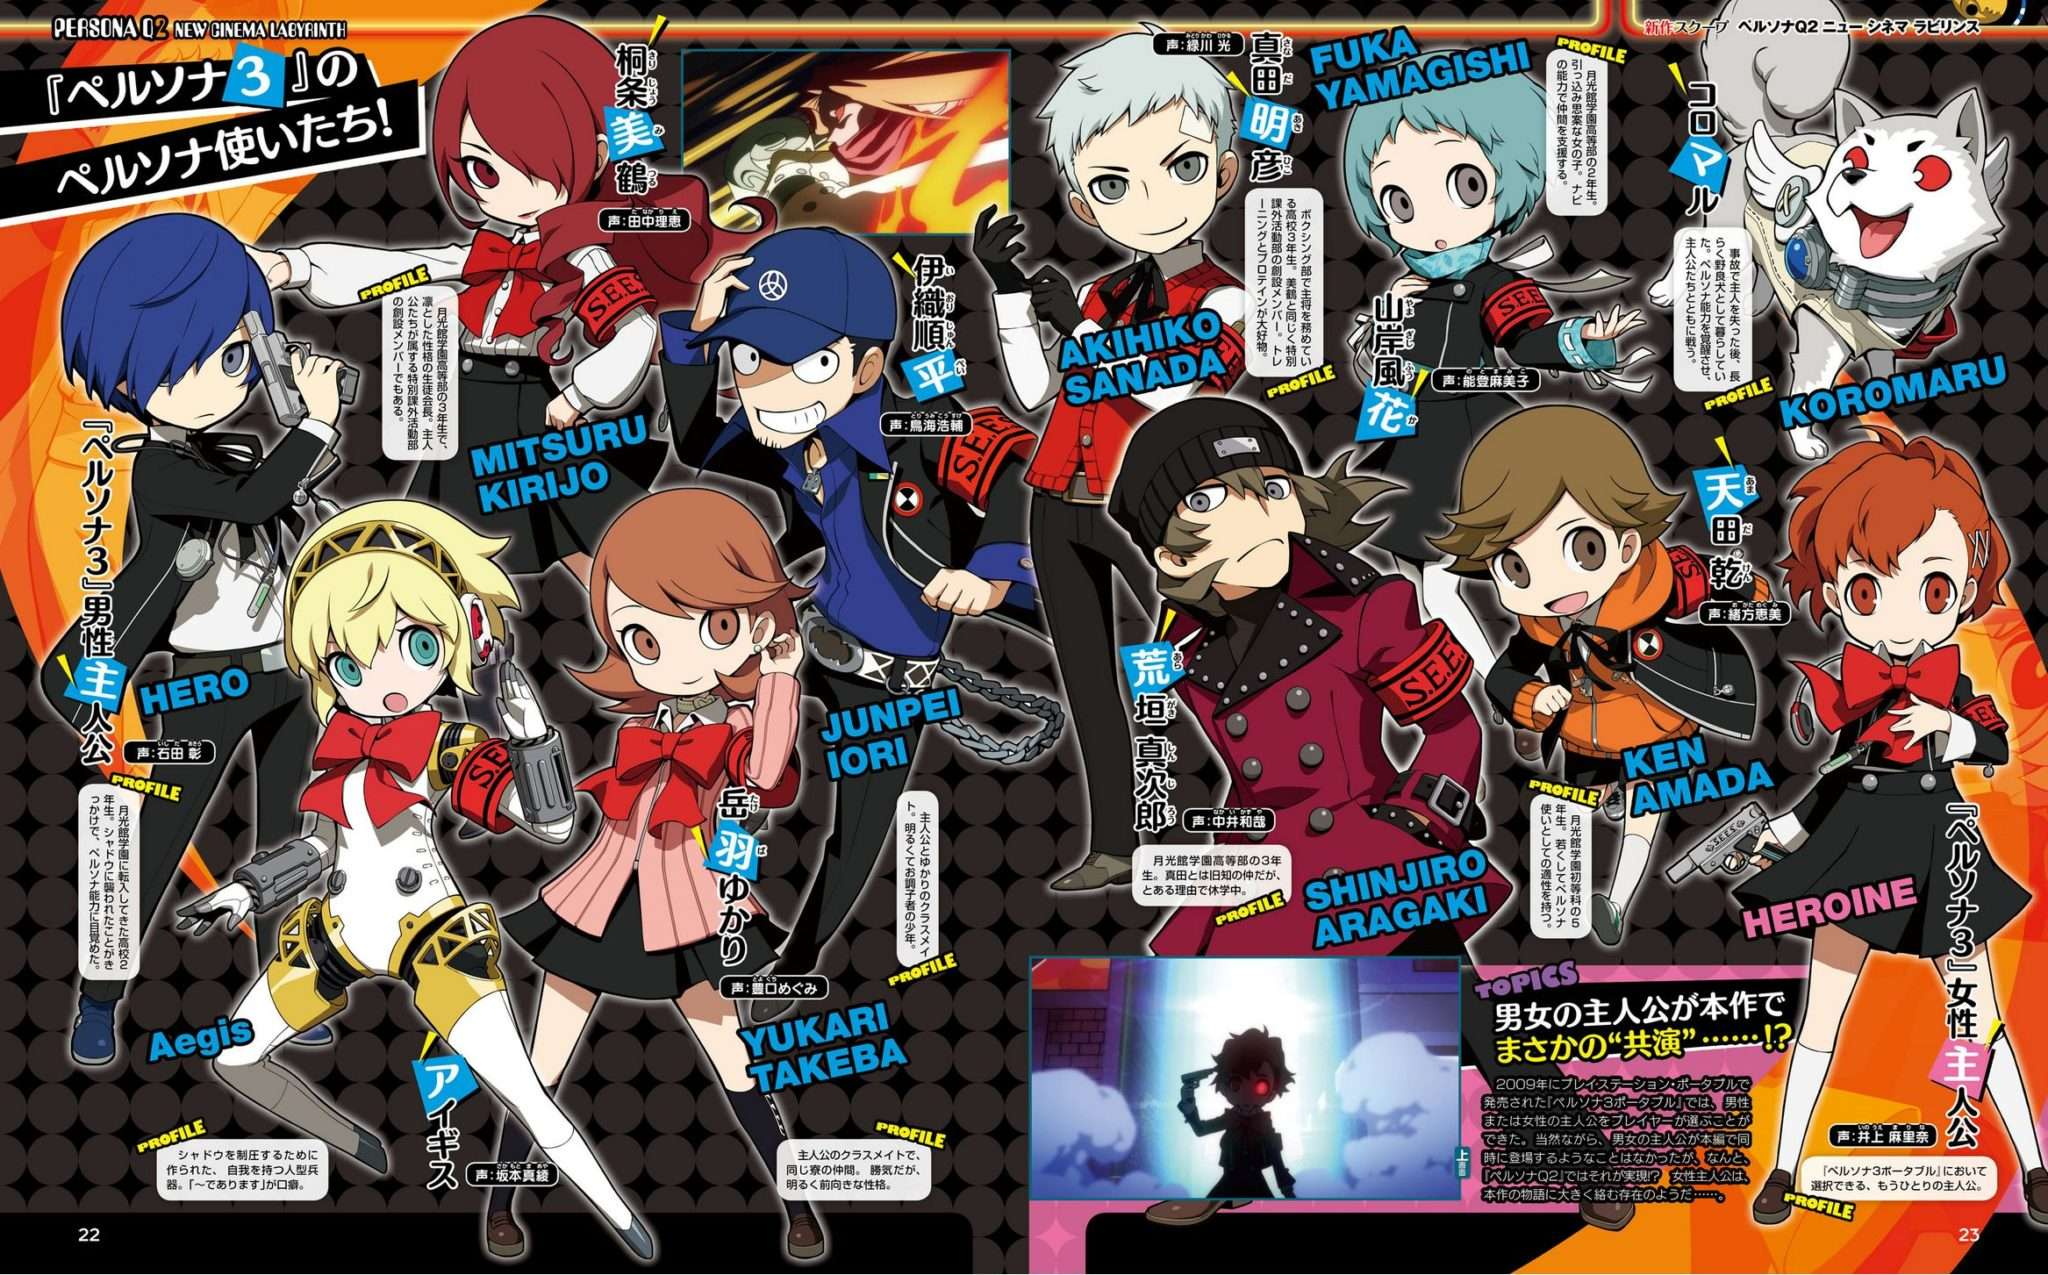 Persona Q2 New cinema Labyrinth Walkthrough Uk